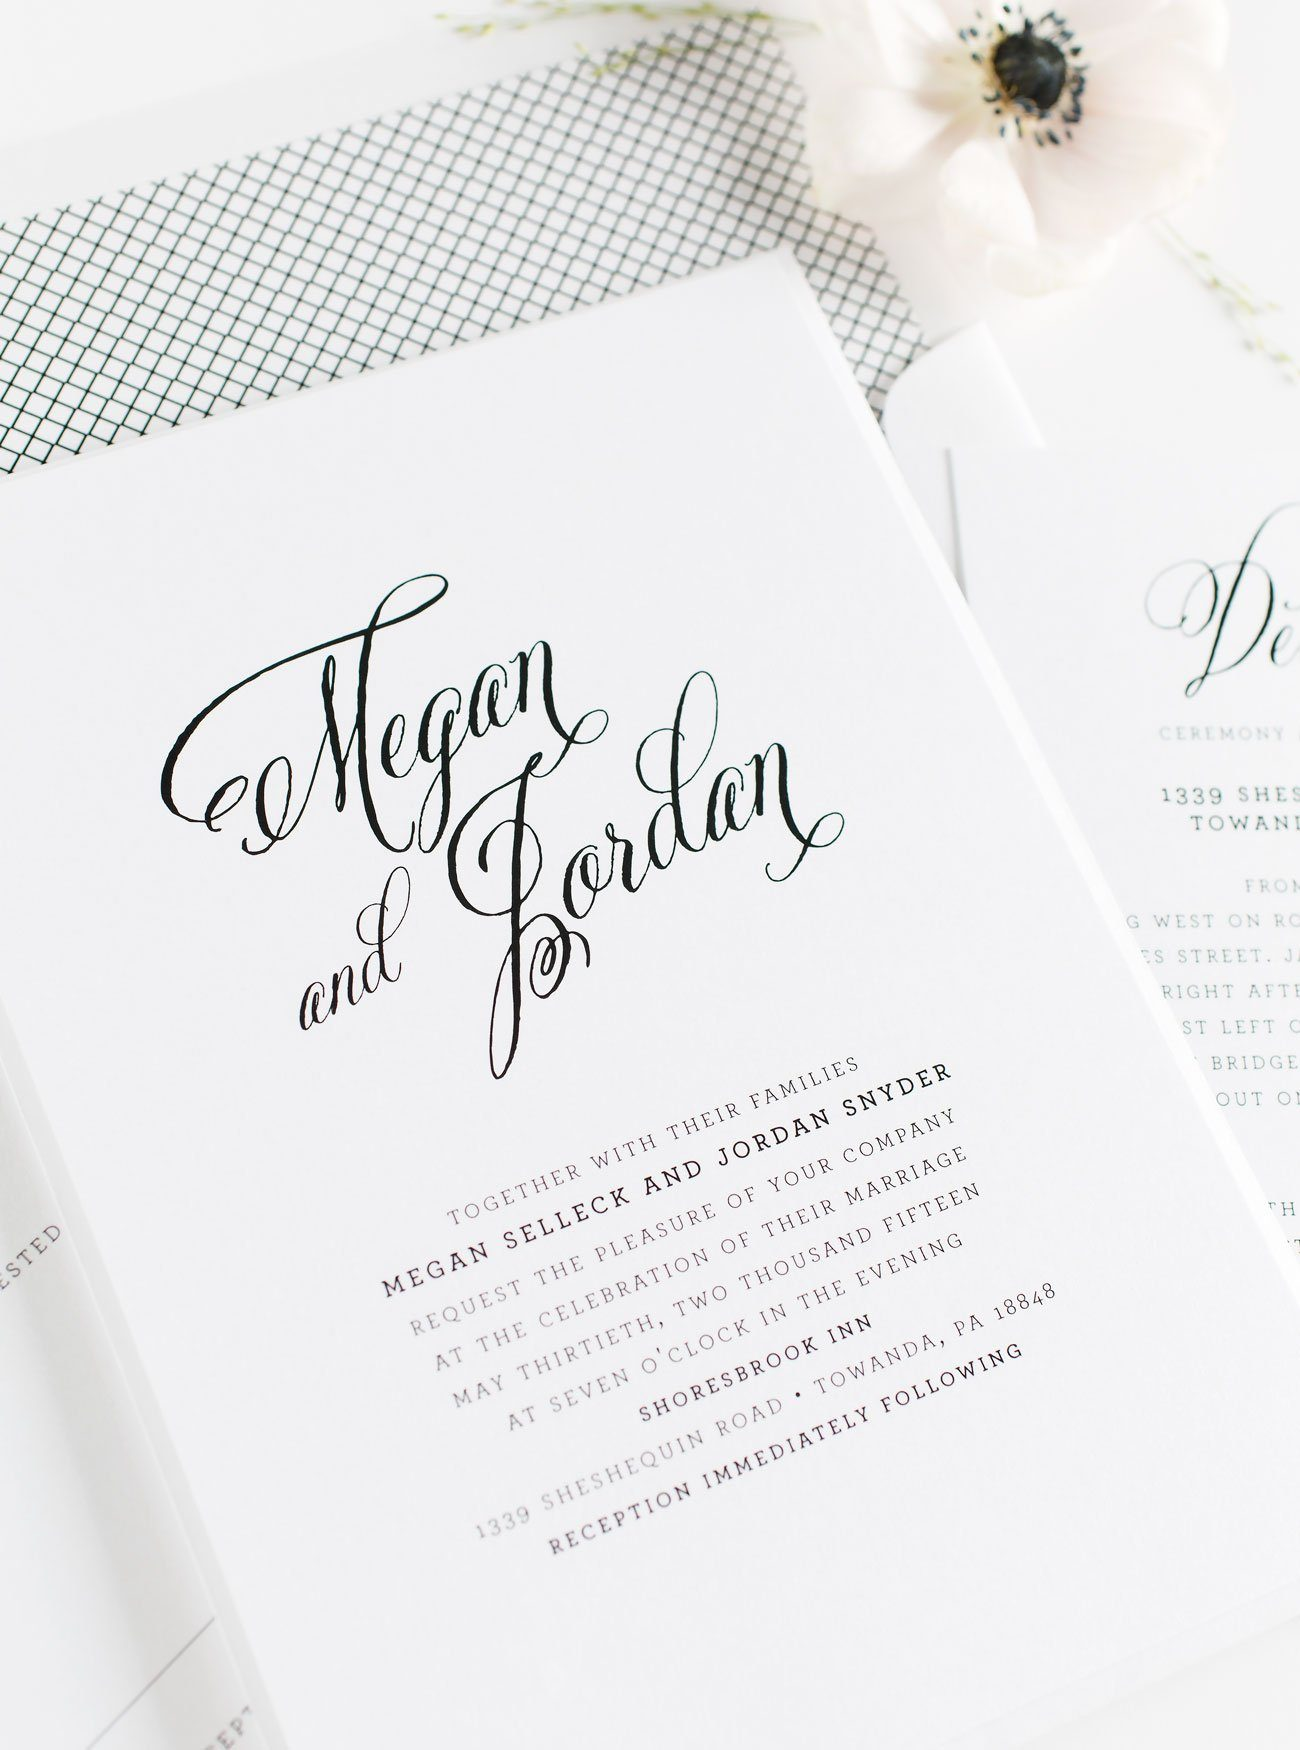 Calligraphy wedding invitations in black and white